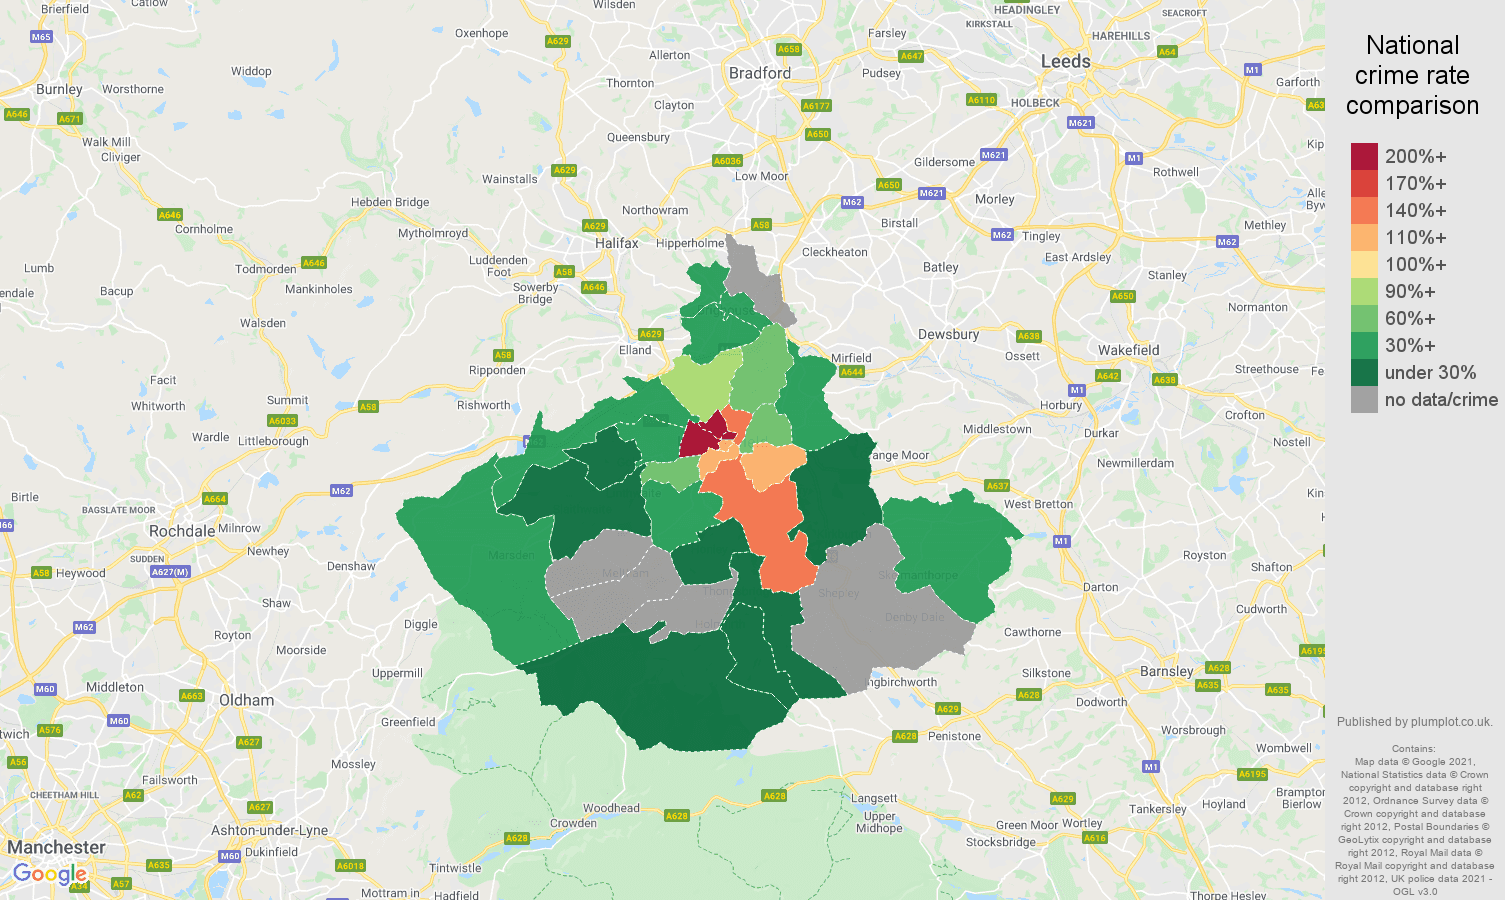 Huddersfield robbery crime rate comparison map